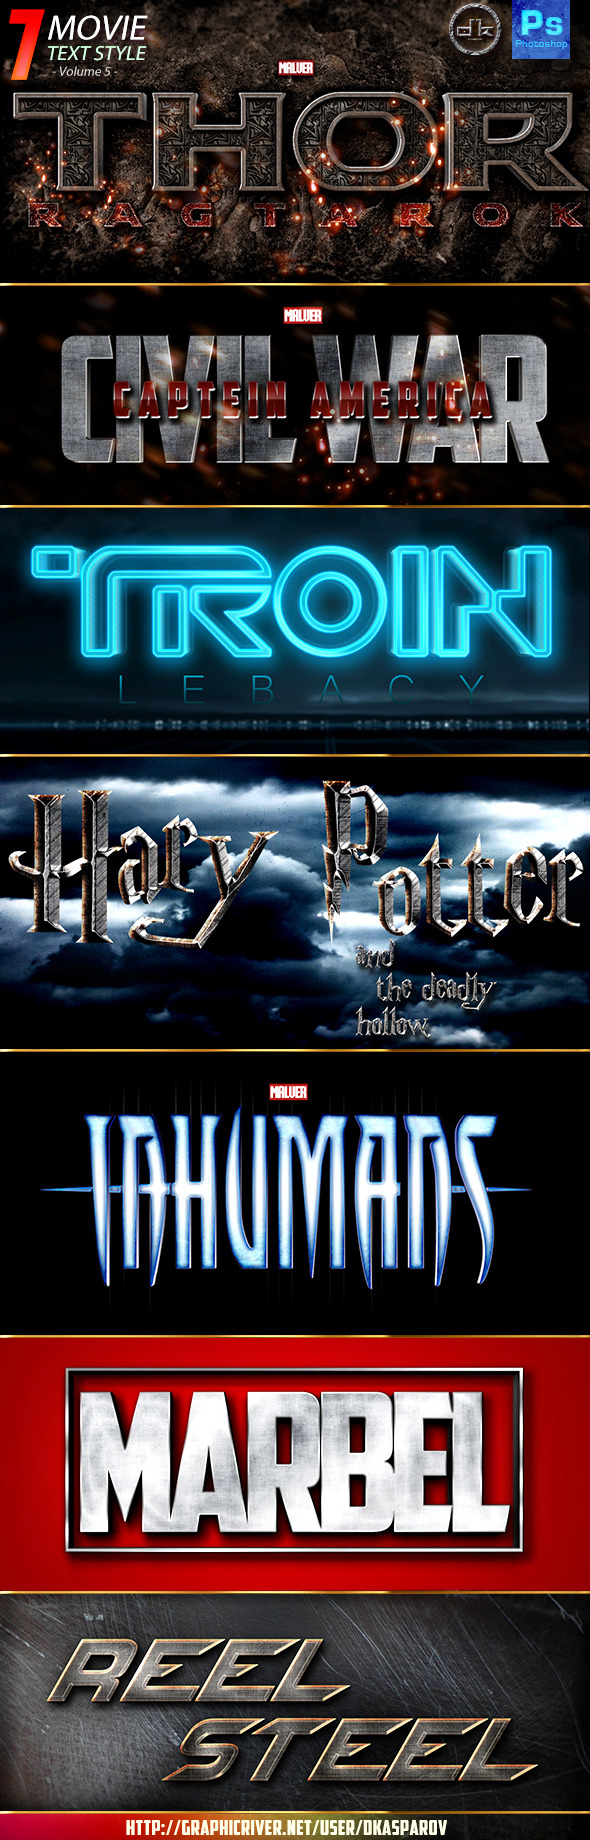 Movie Text Style Vol.5